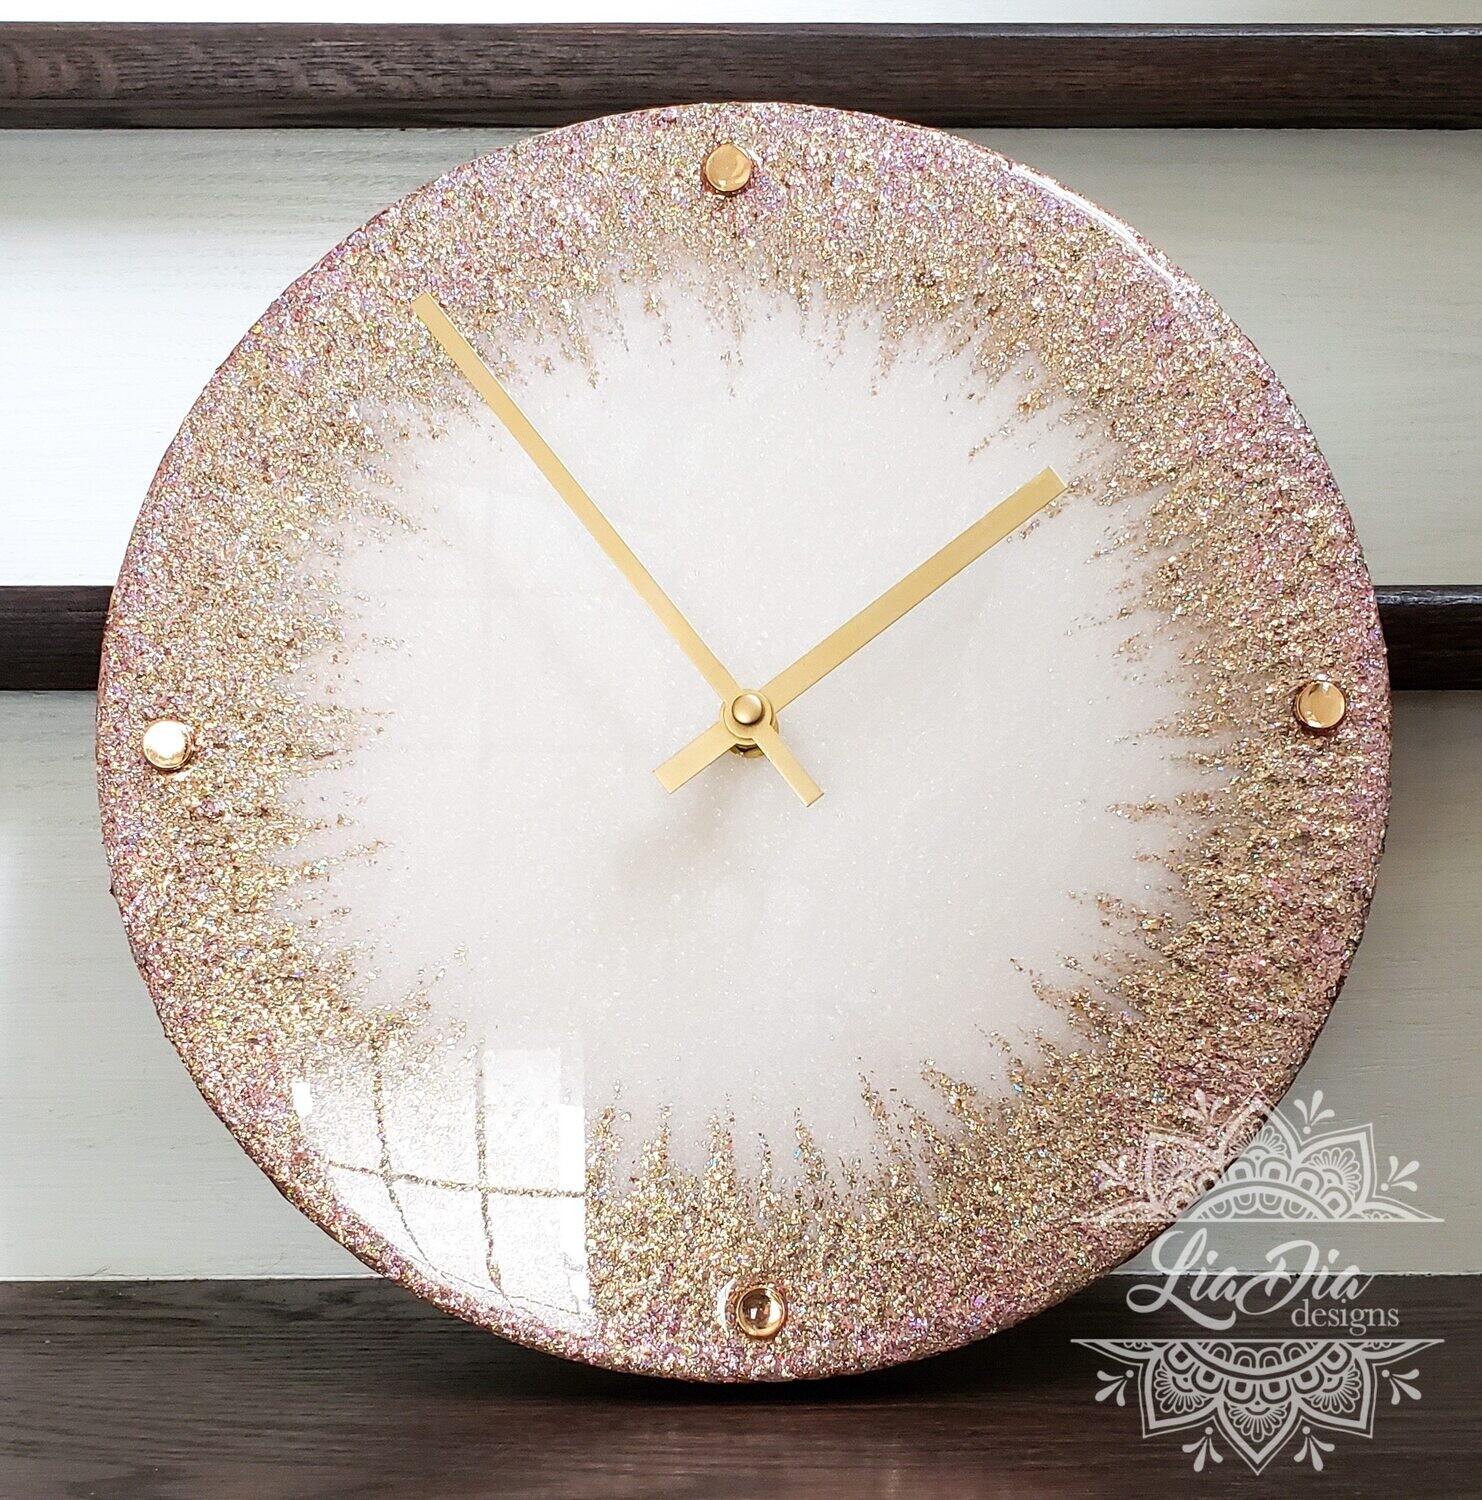 Ultra Glam Clock - COMING SOON! - Message for Details